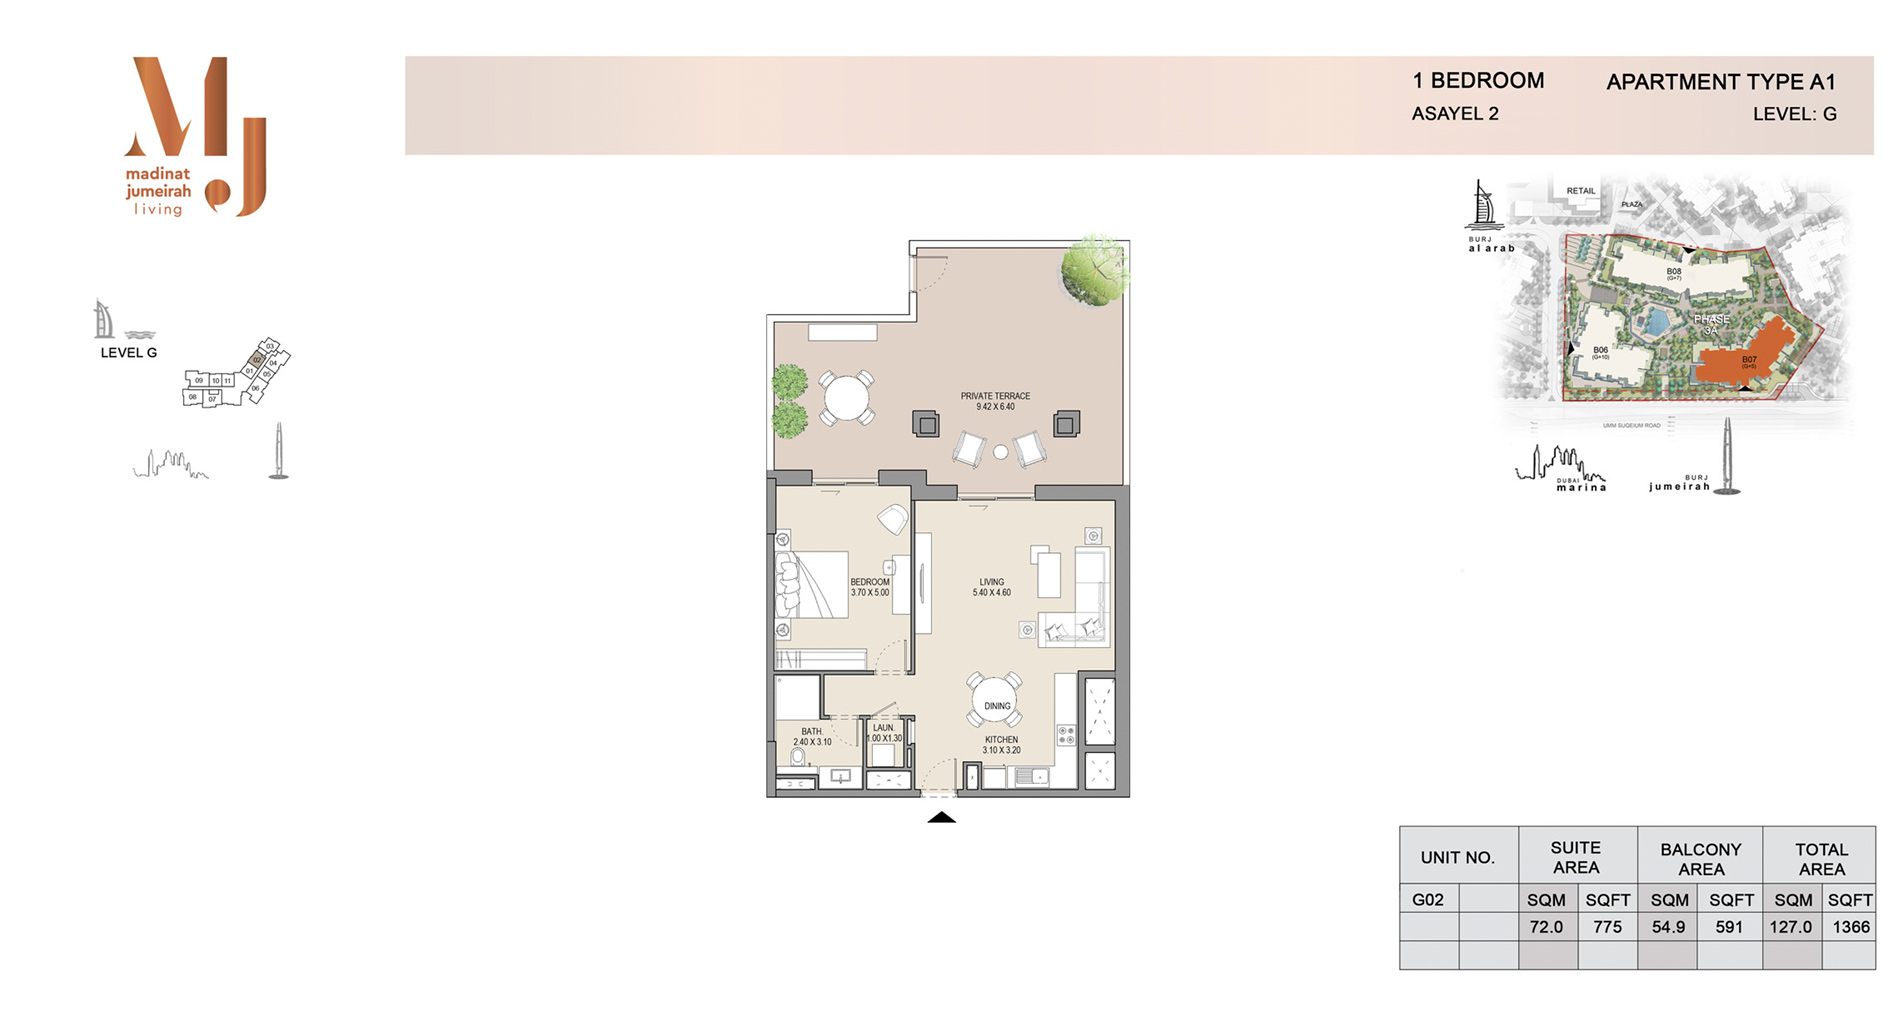 Building-2, 1 Bed Type A1 Level-G, Size 1366    sq. ft.